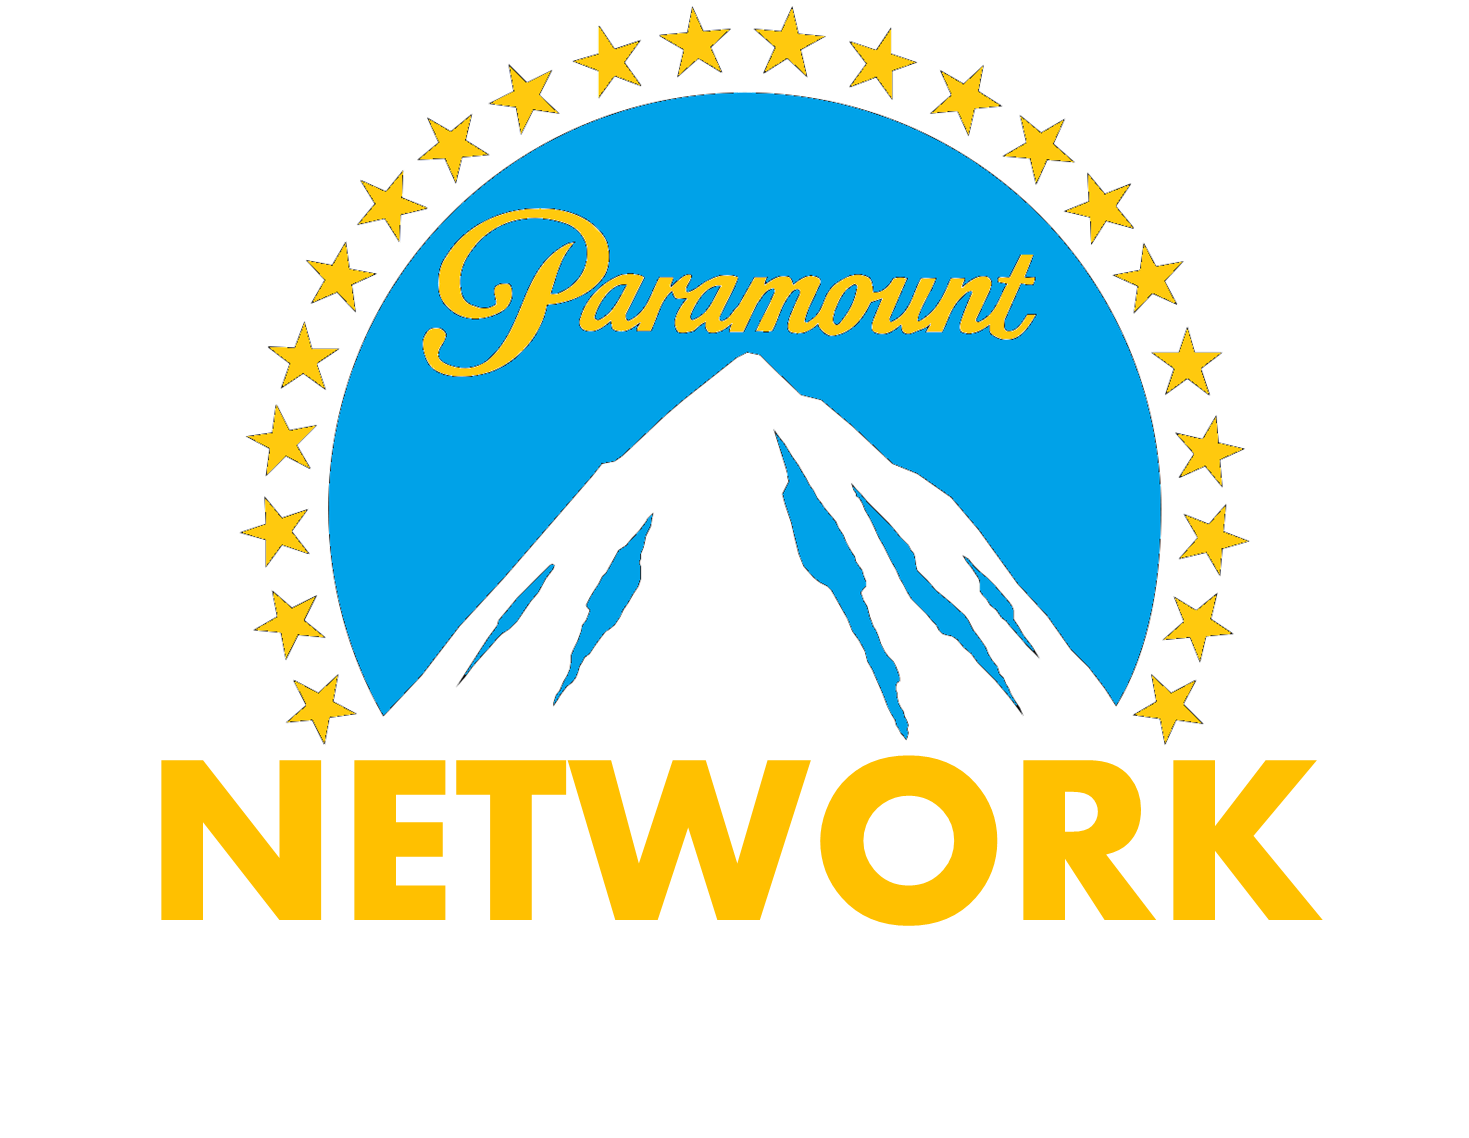 Paramount_Network_2008.png